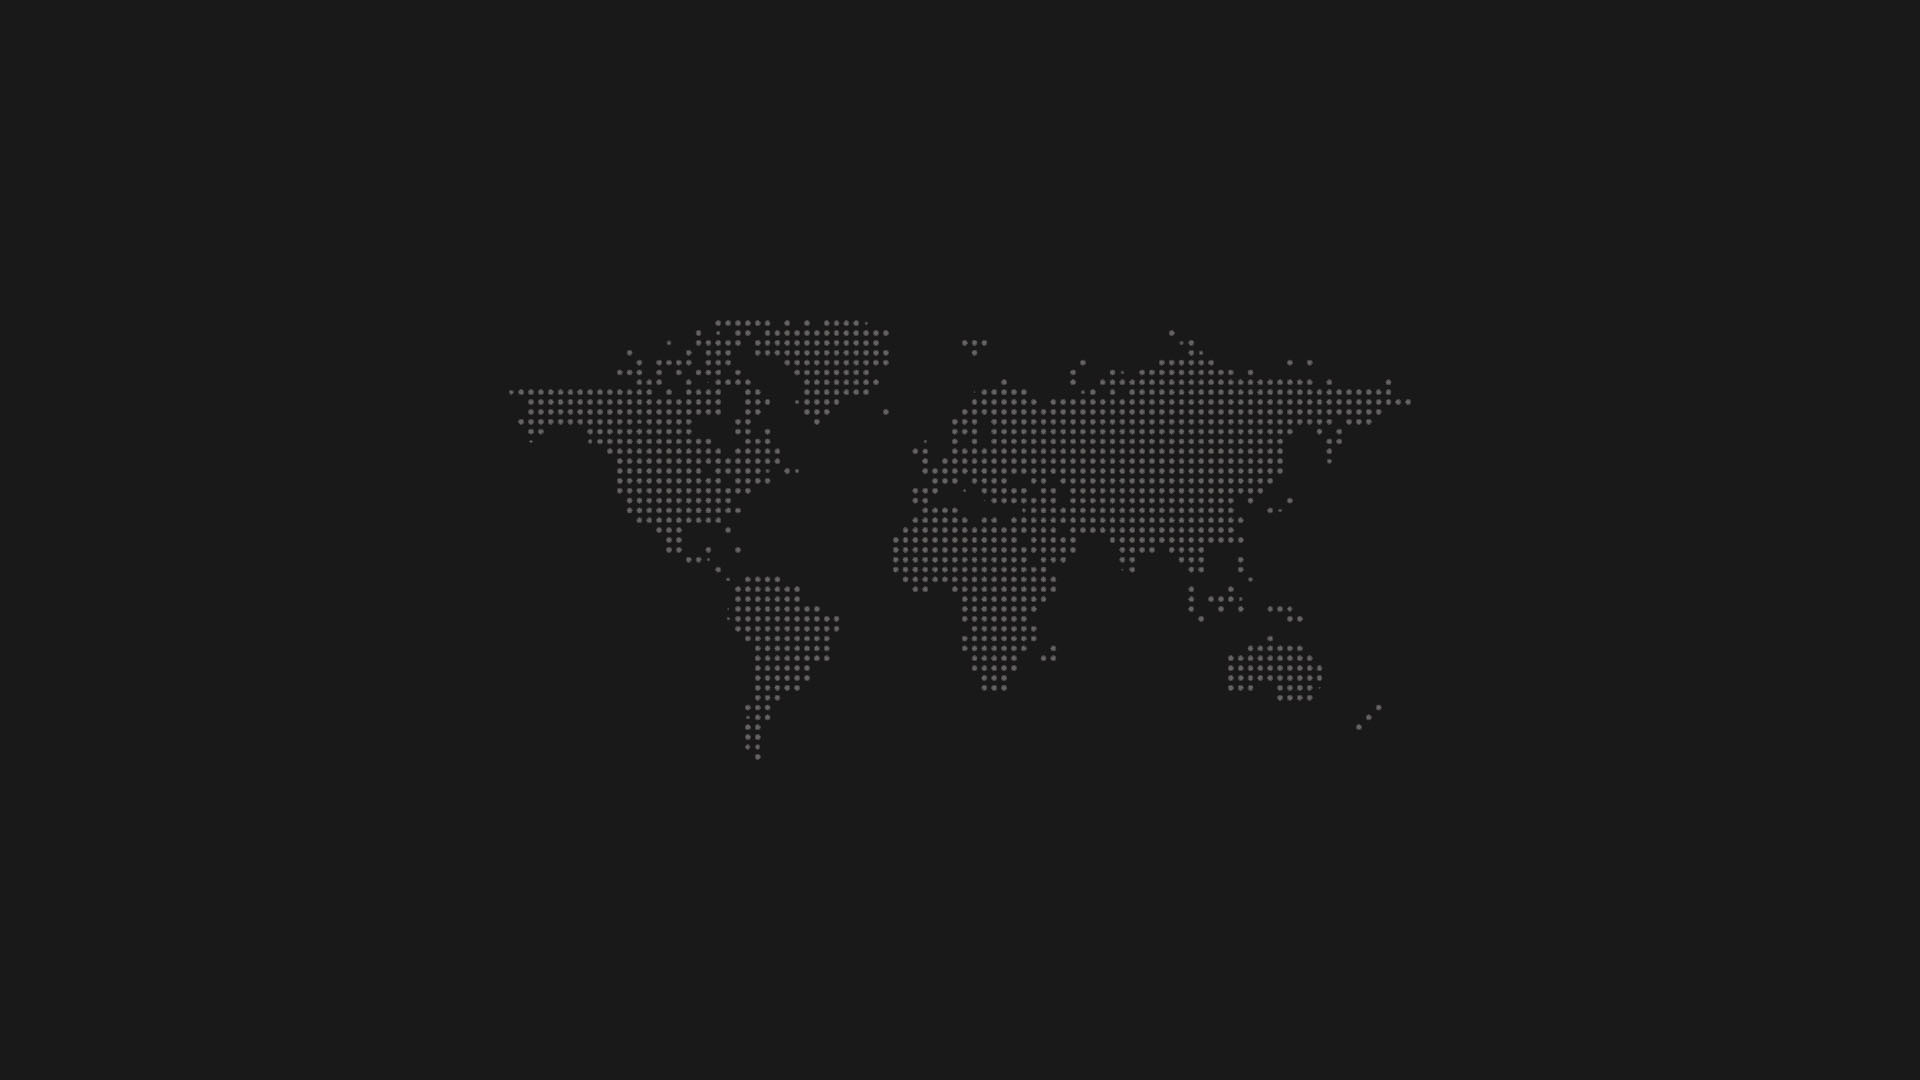 1920x1080 dark-world-map-wallpaper-4694-4941-hd-wallpapers.